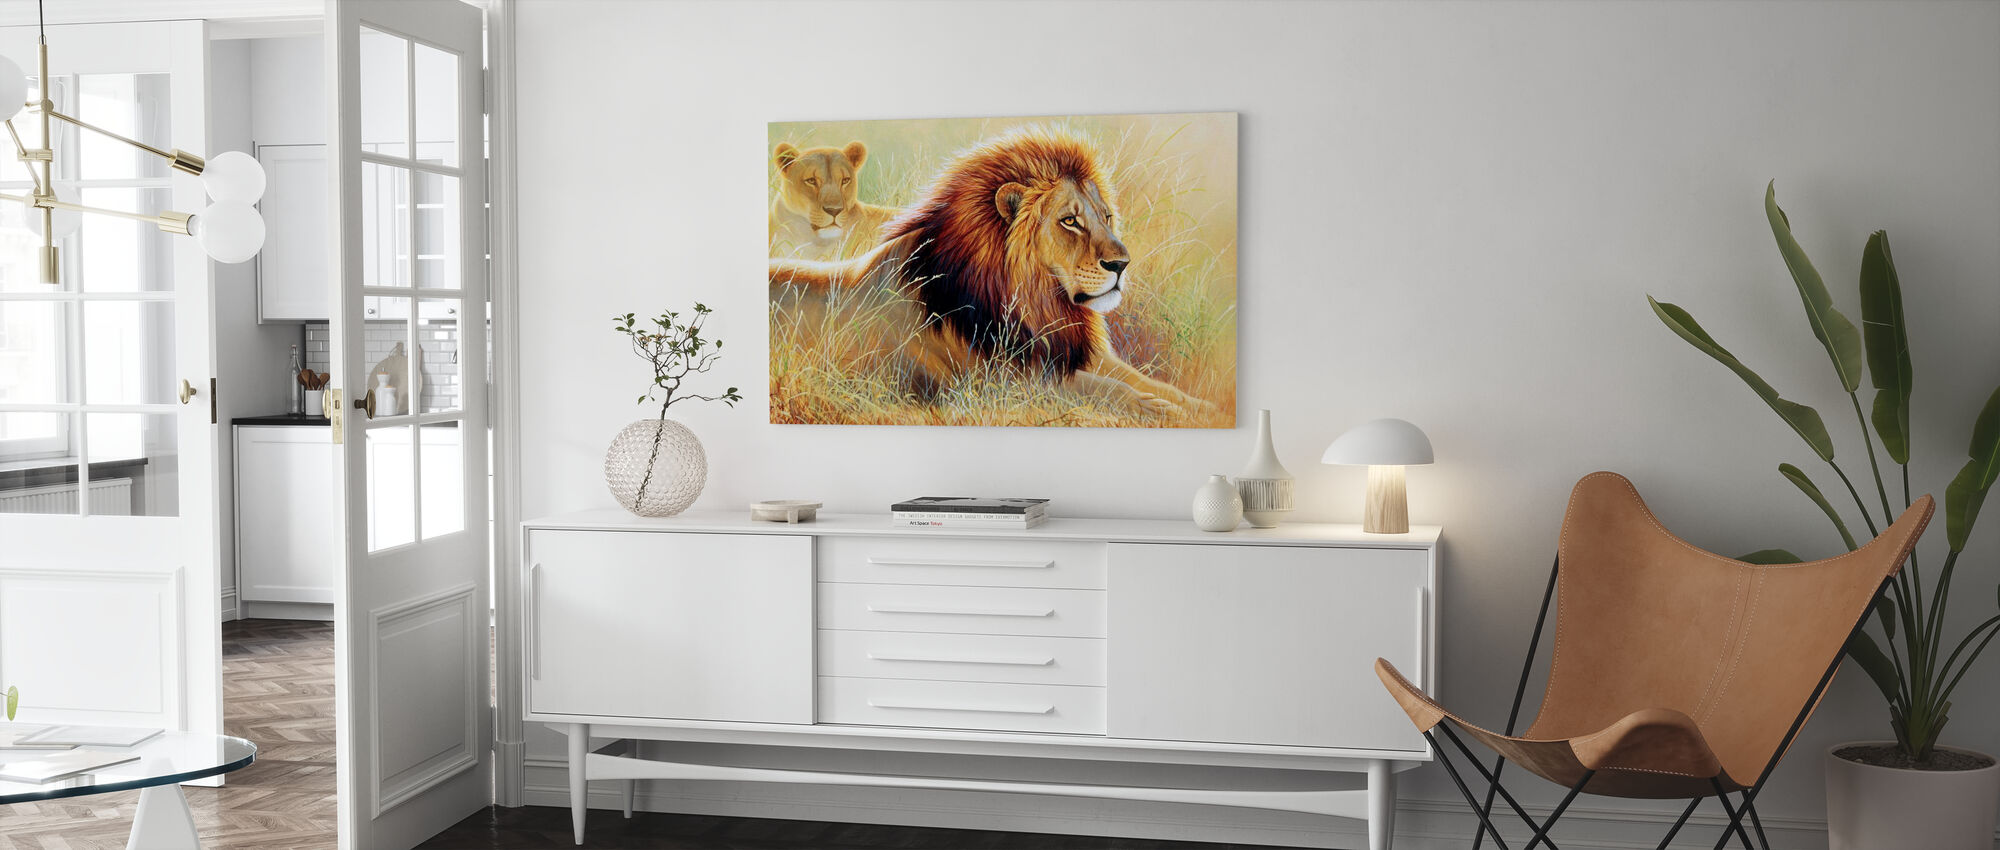 Lion and Lioness - Canvas print - Living Room